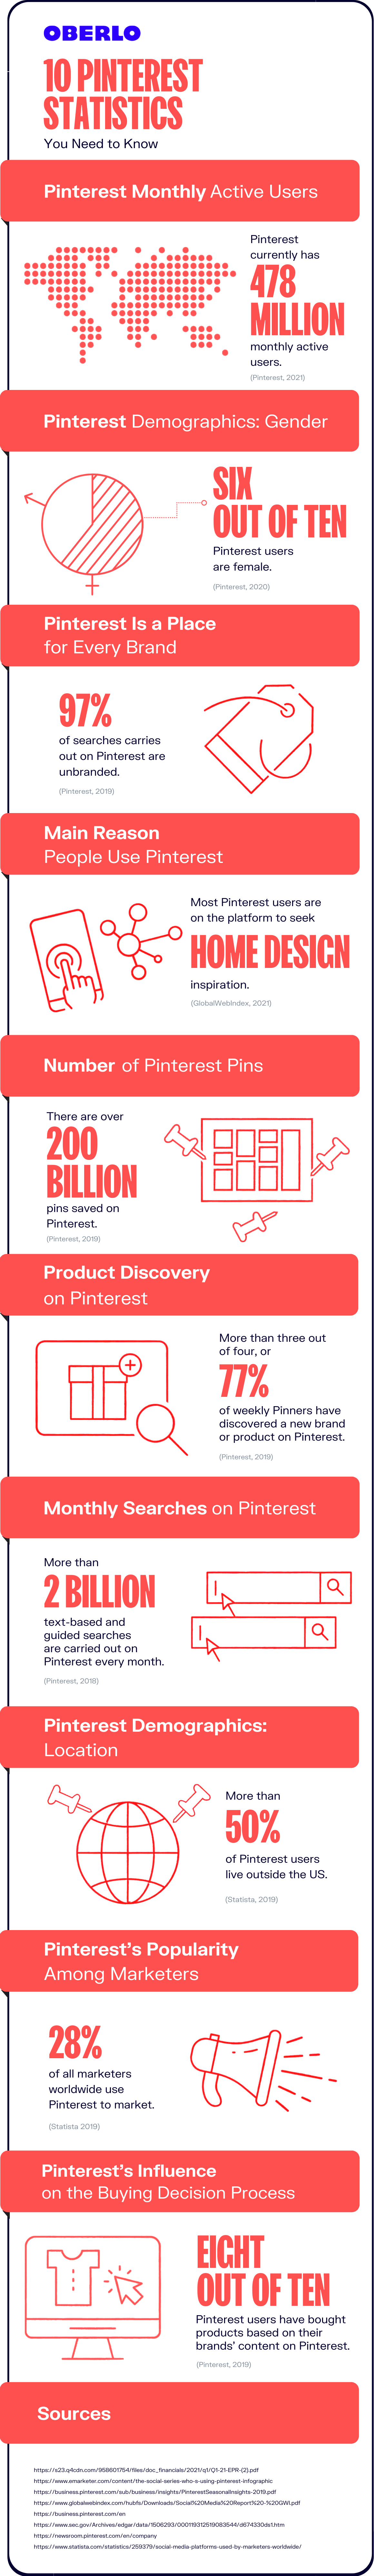 pinterest statistics full graphic